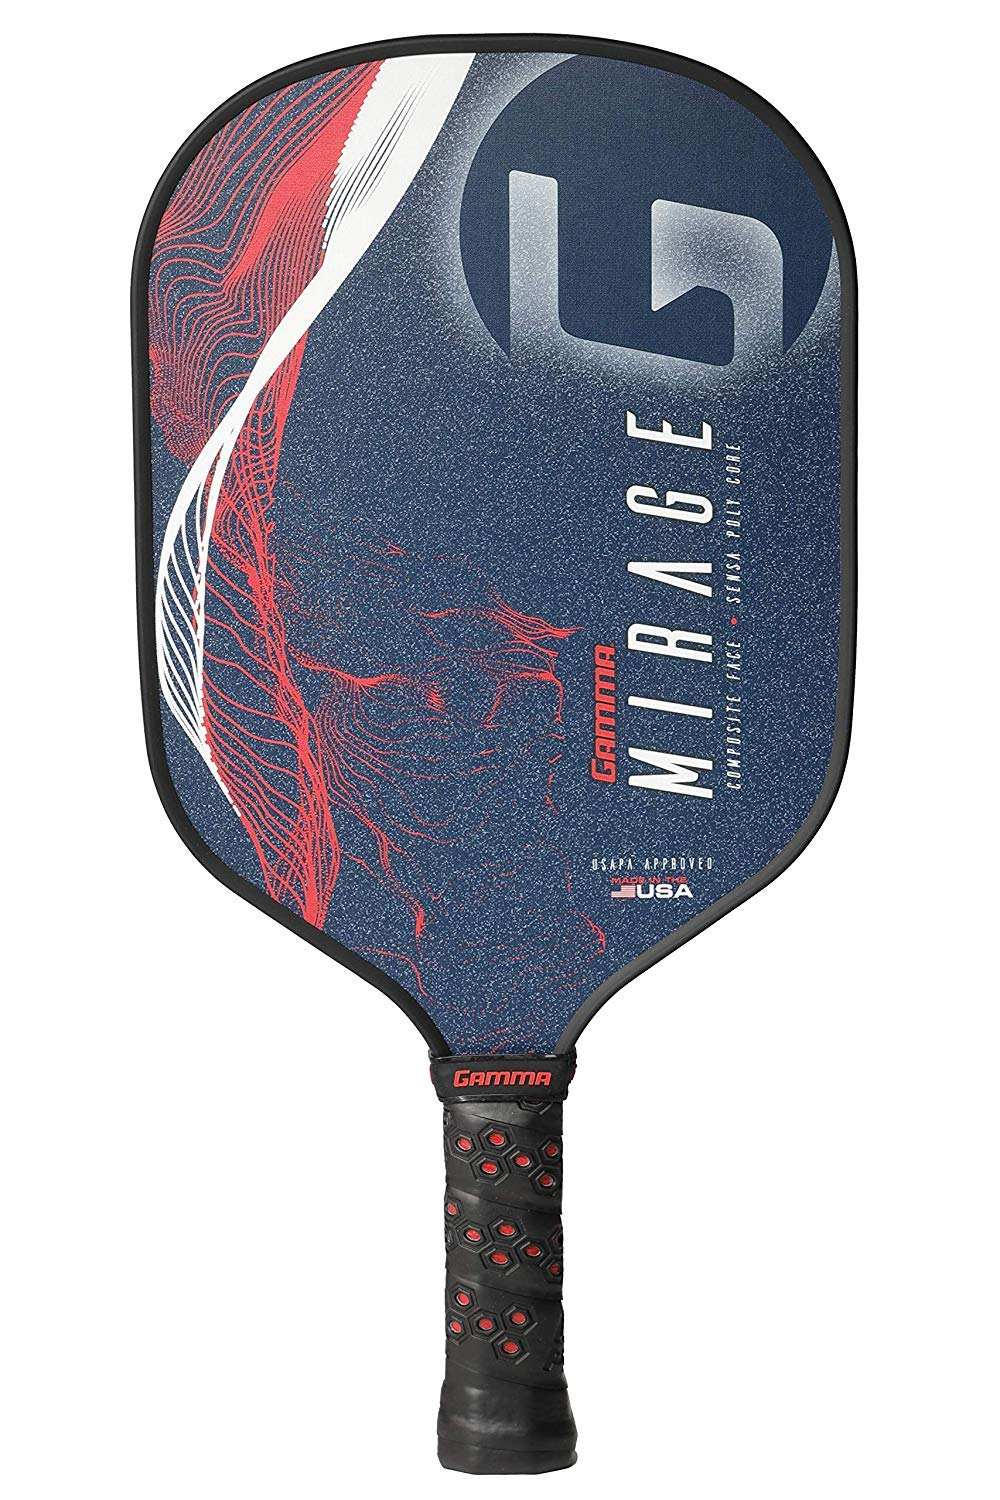 GAMMA Mirage Composite Pickleball Paddle: Pickle Ball Paddles for Indoor & Outdoor Play - USAPA Approved Racquet for Adults & Kids - Red/White/Blue by Gamma (Image #2)